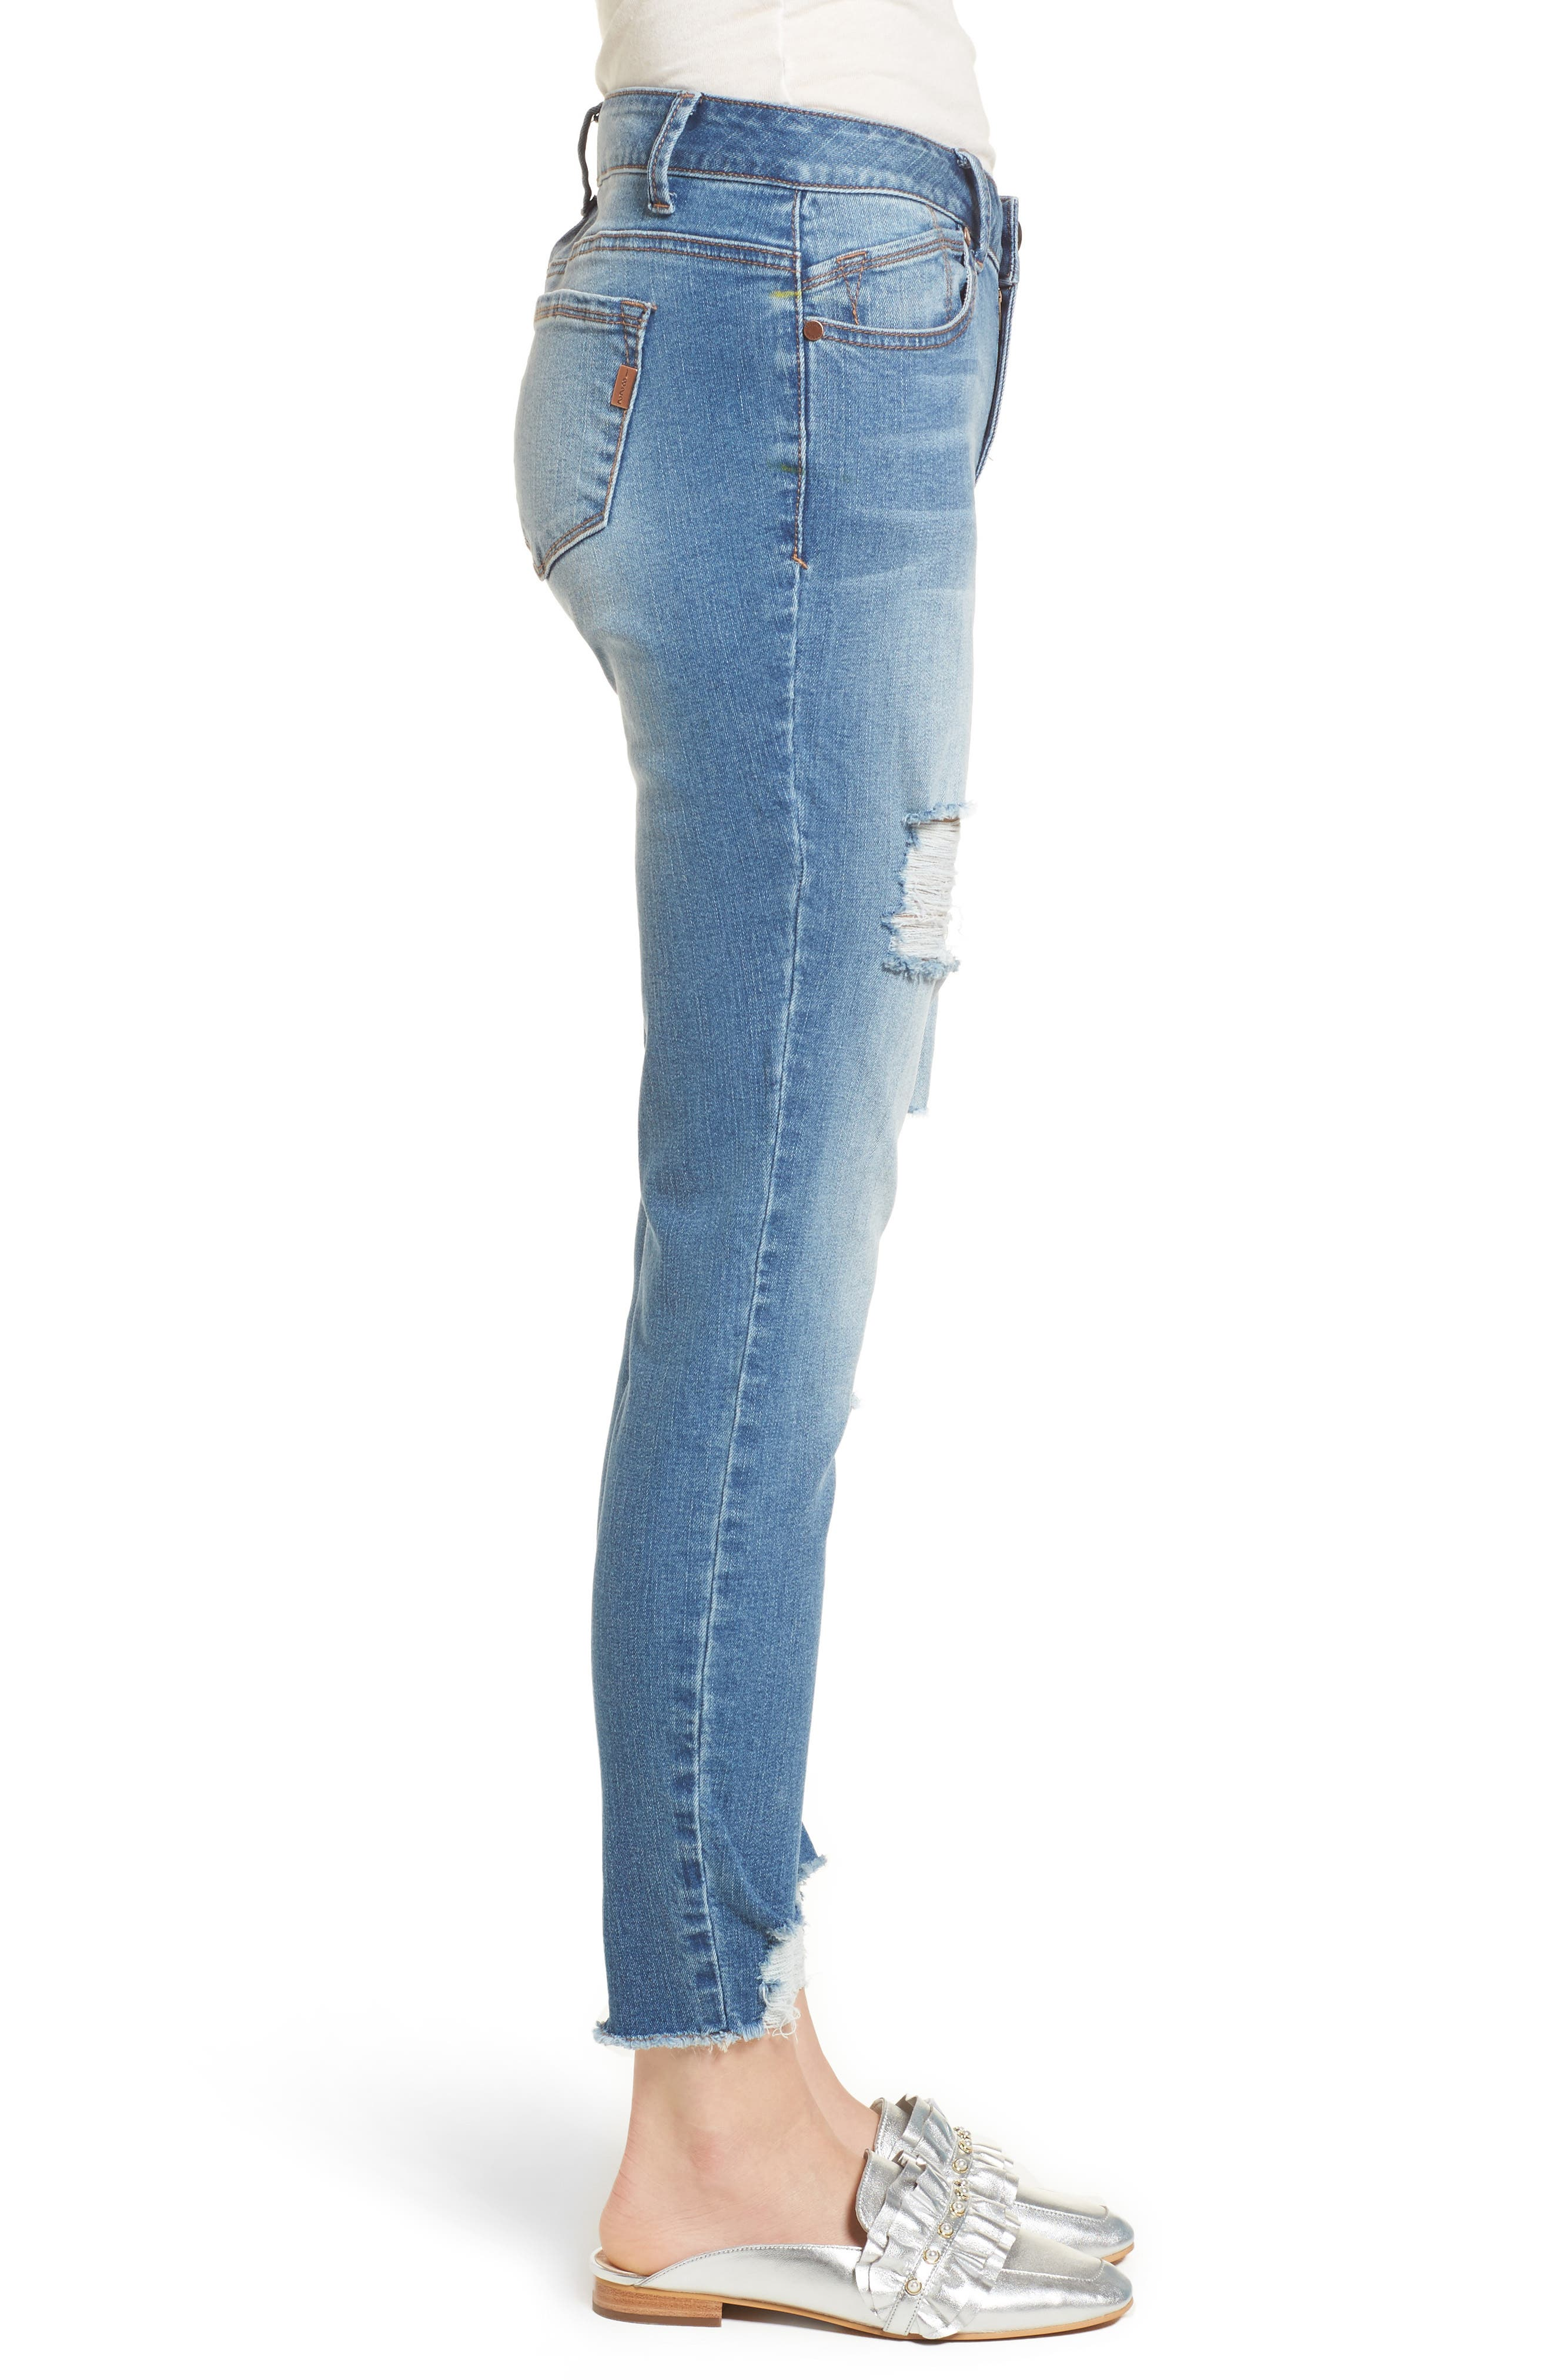 Decon Ripped Skinny Jeans,                             Alternate thumbnail 3, color,                             426